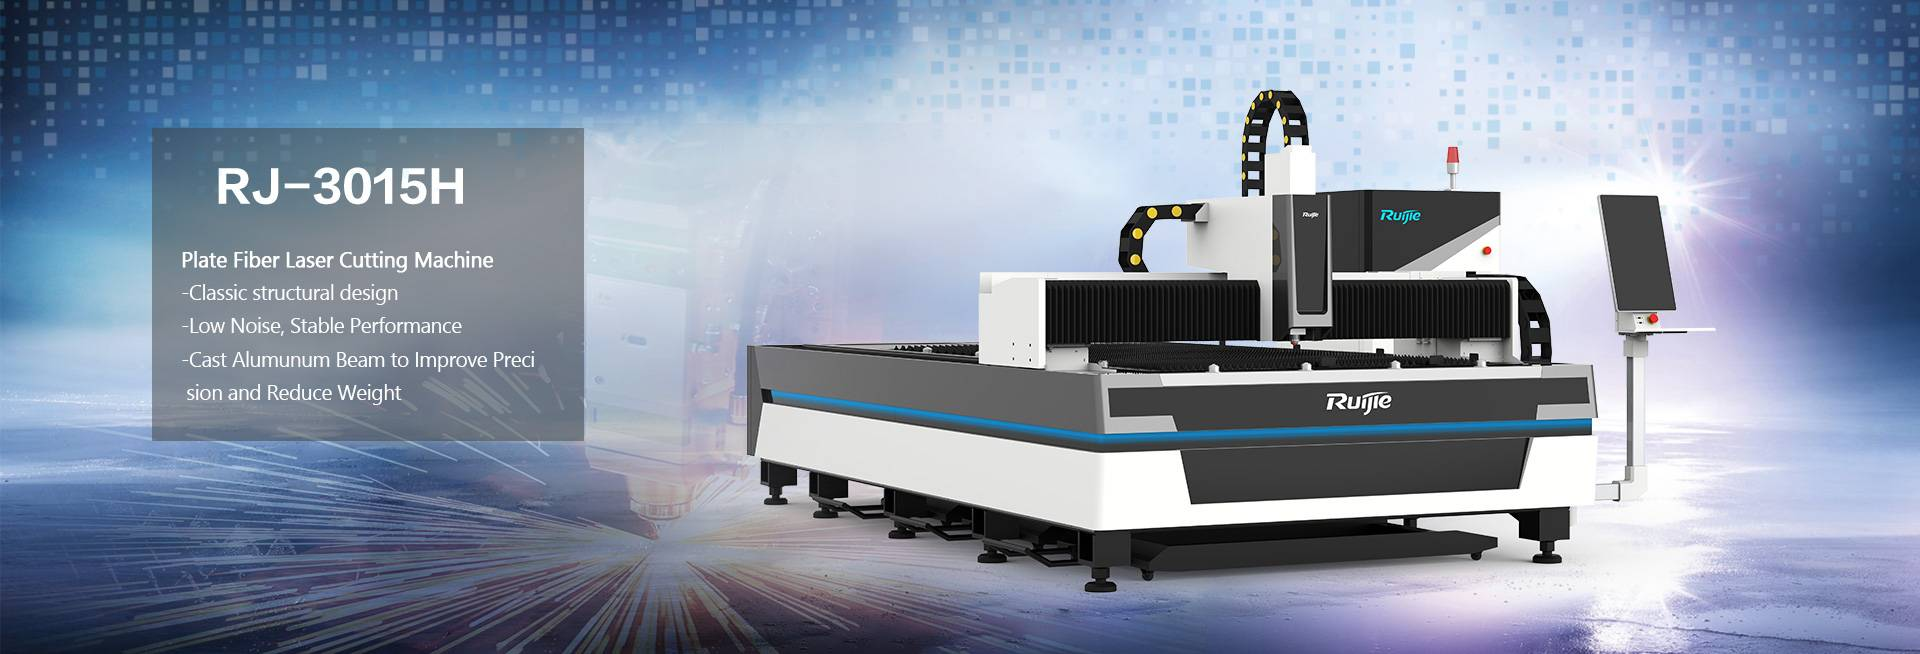 3015H fiber Laser Cutting Machine